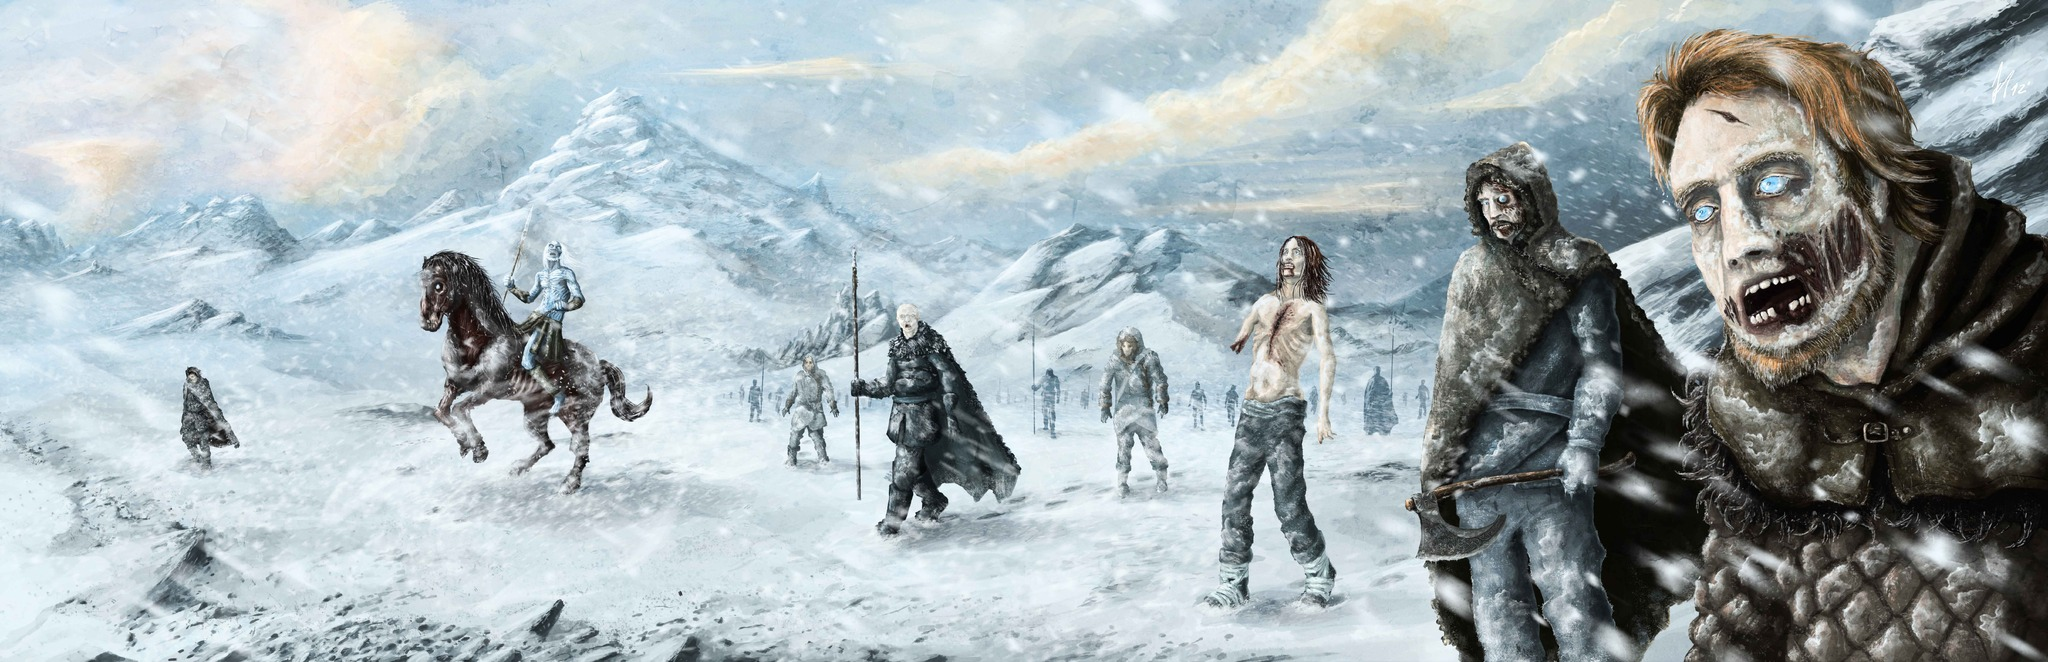 White Walkers Hechos Por Mi En Ps Game Of Thrones Co